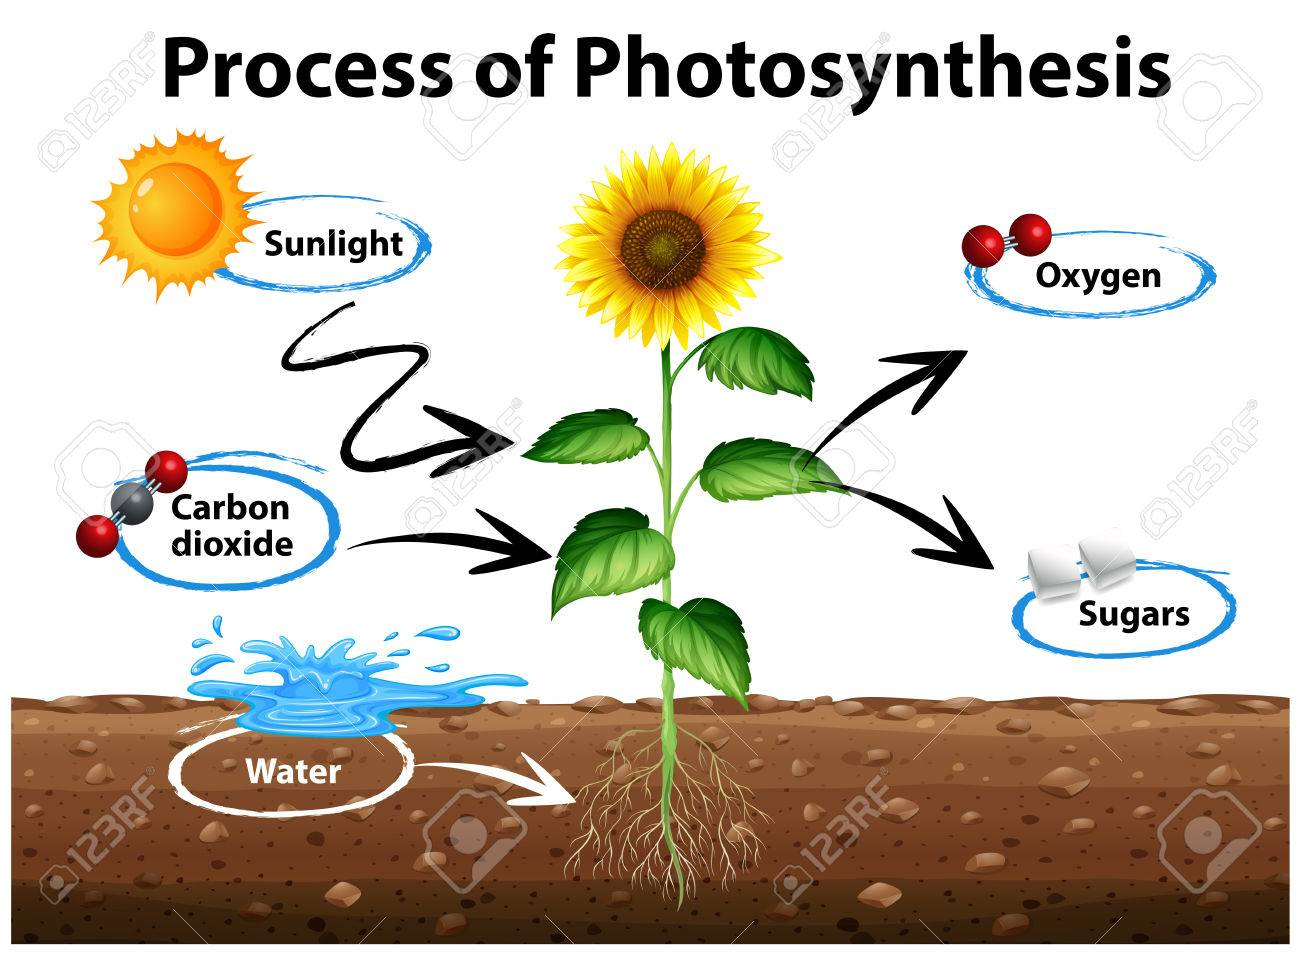 hight resolution of diagram showing sunflower and process of photosynthesis illustration stock vector 71260378